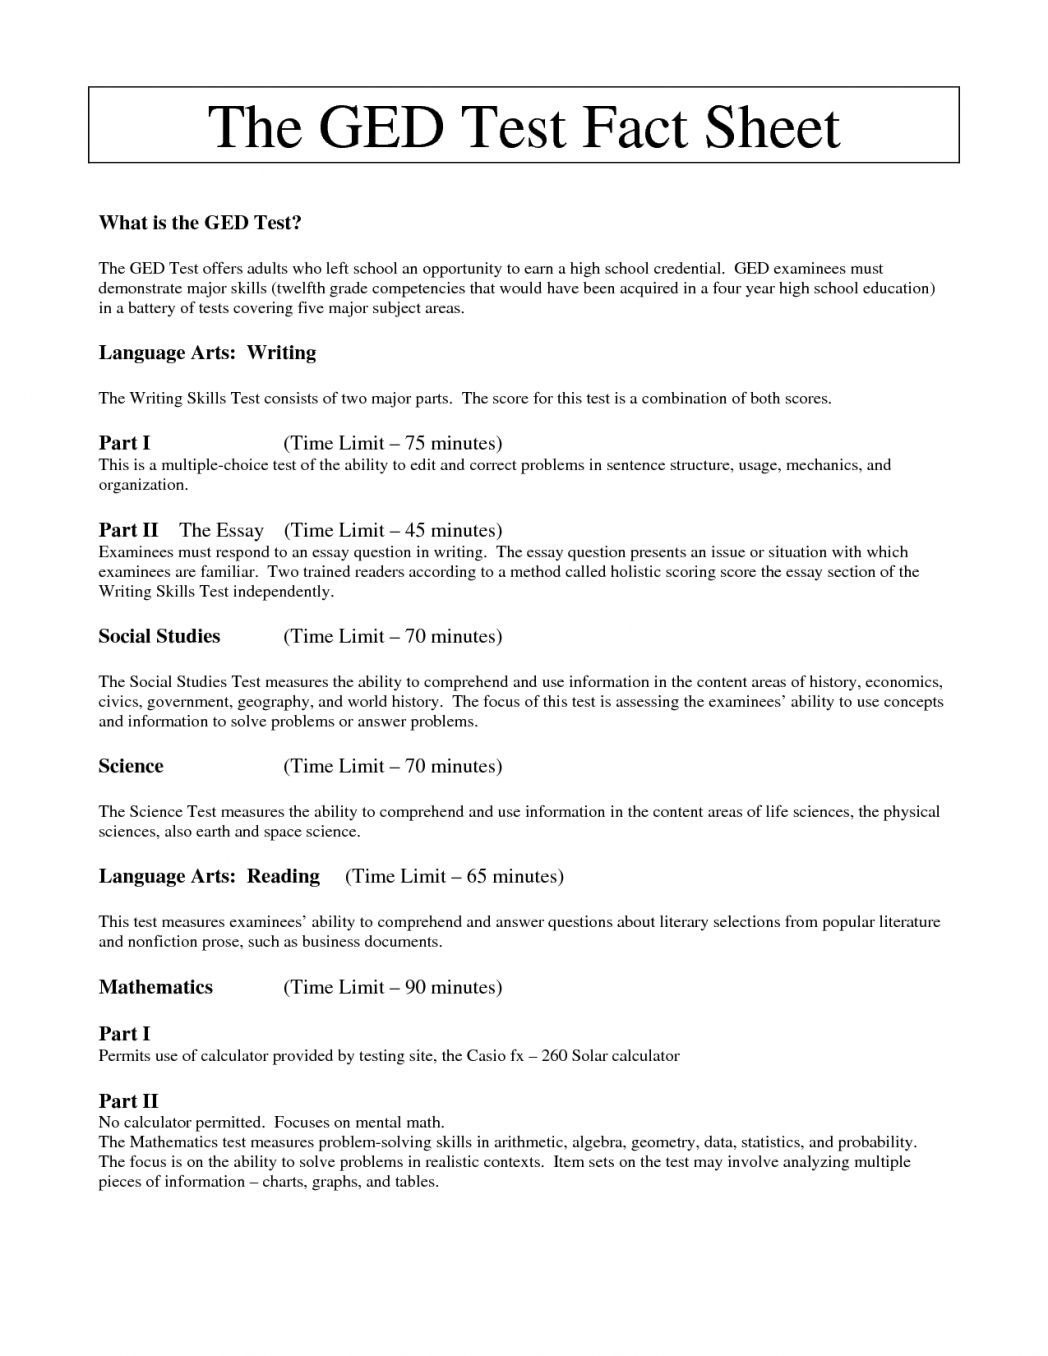 016 Ged Essay Examples Write My Online Free How To An For Test Com - Free Ged Practice Test 2016 Printable